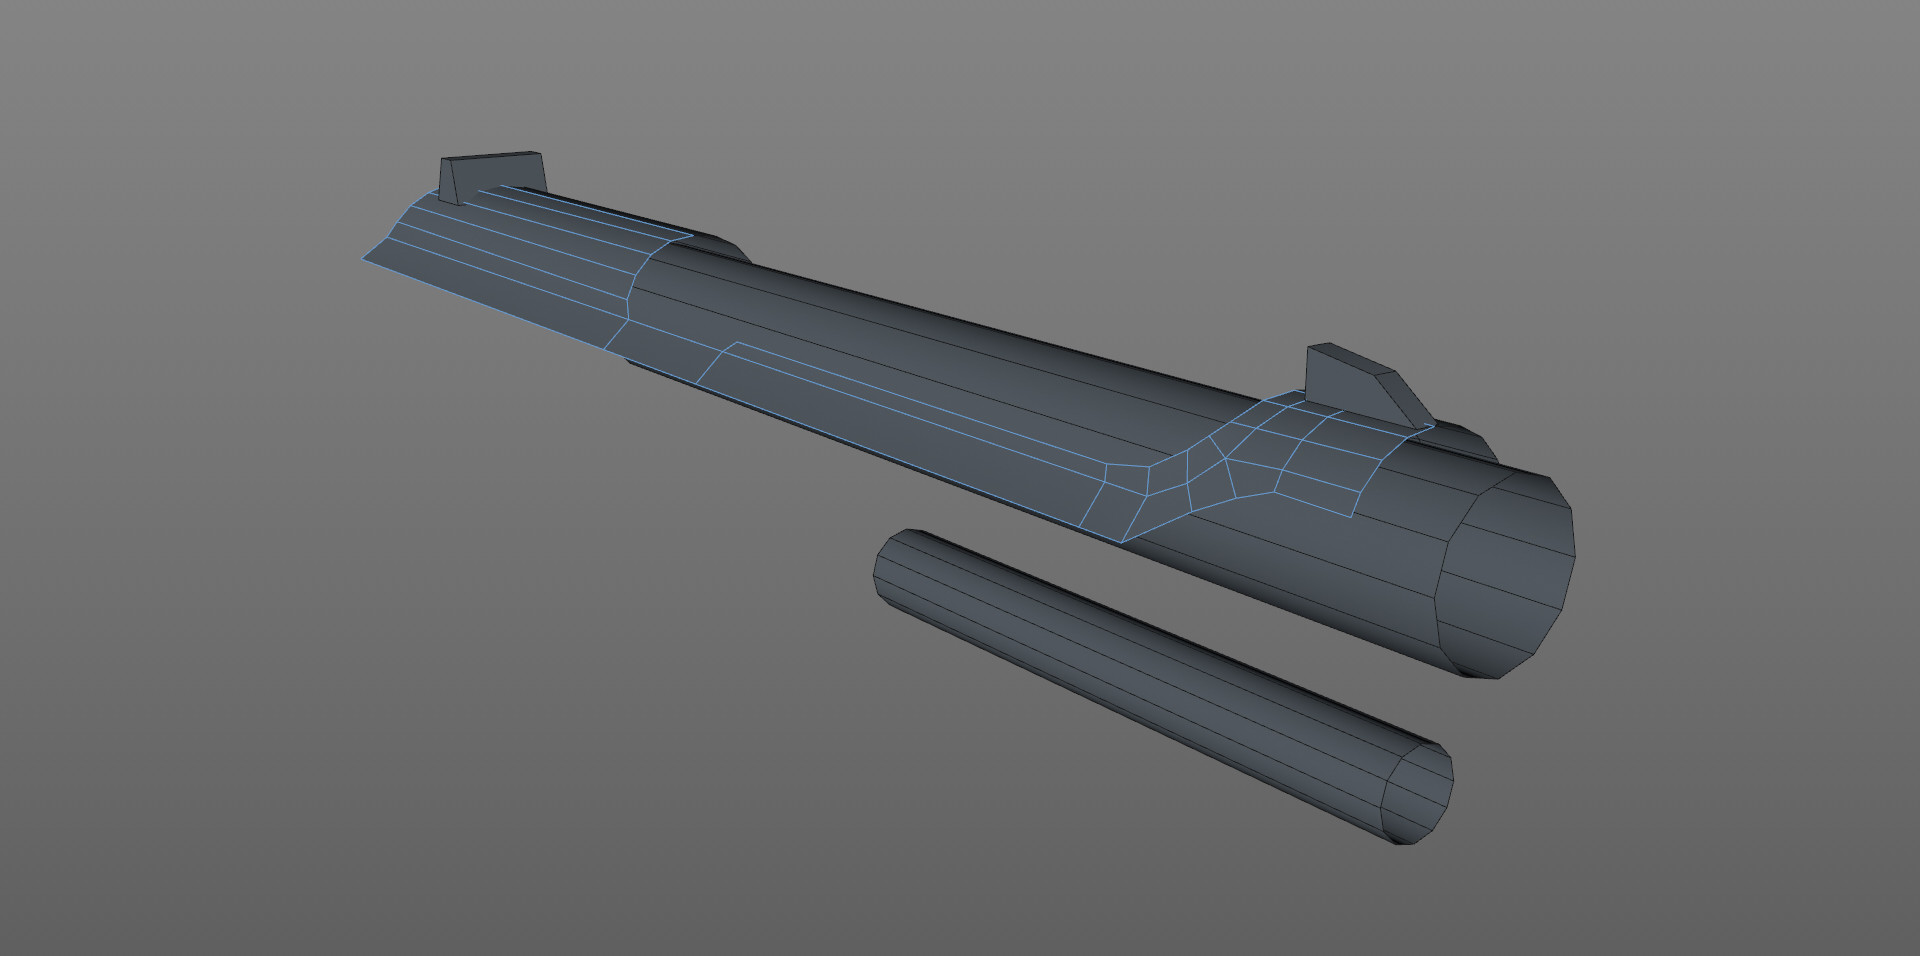 Started with a cylinder object as a base for the slide. Dropped into Symmetry and roughed out the shape keeping poly count low.